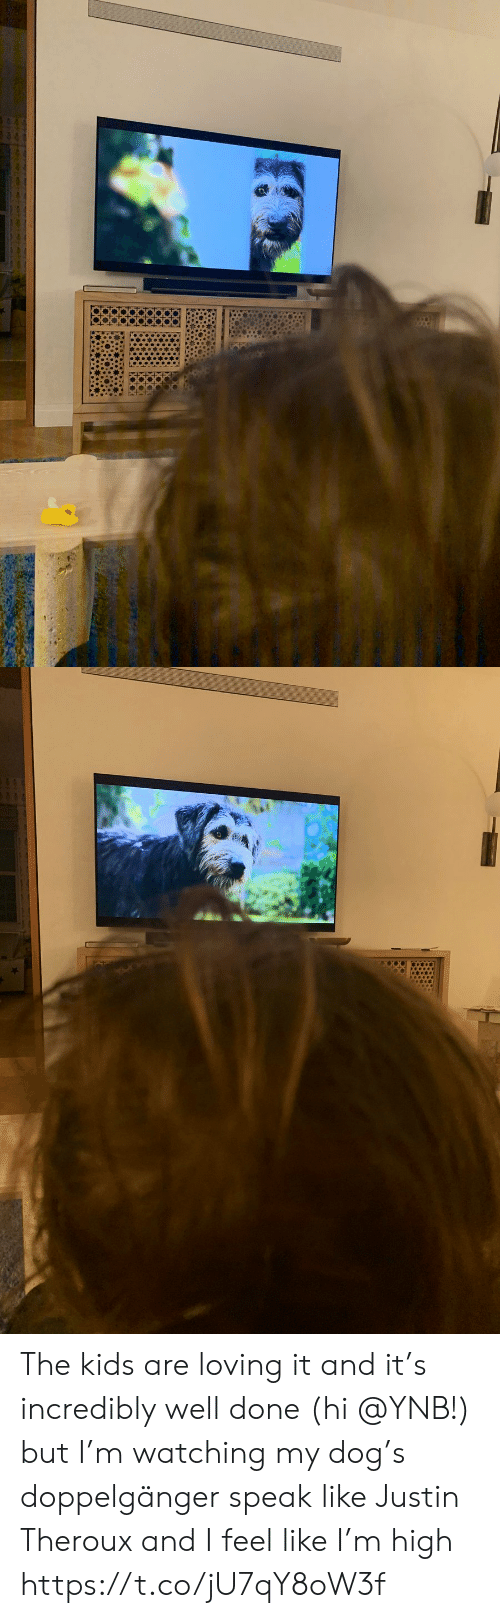 Doppelganger, Memes, and Kids: The kids are loving it and it's incredibly well done (hi @YNB!) but I'm watching my dog's doppelgänger speak like Justin Theroux and I feel like I'm high https://t.co/jU7qY8oW3f